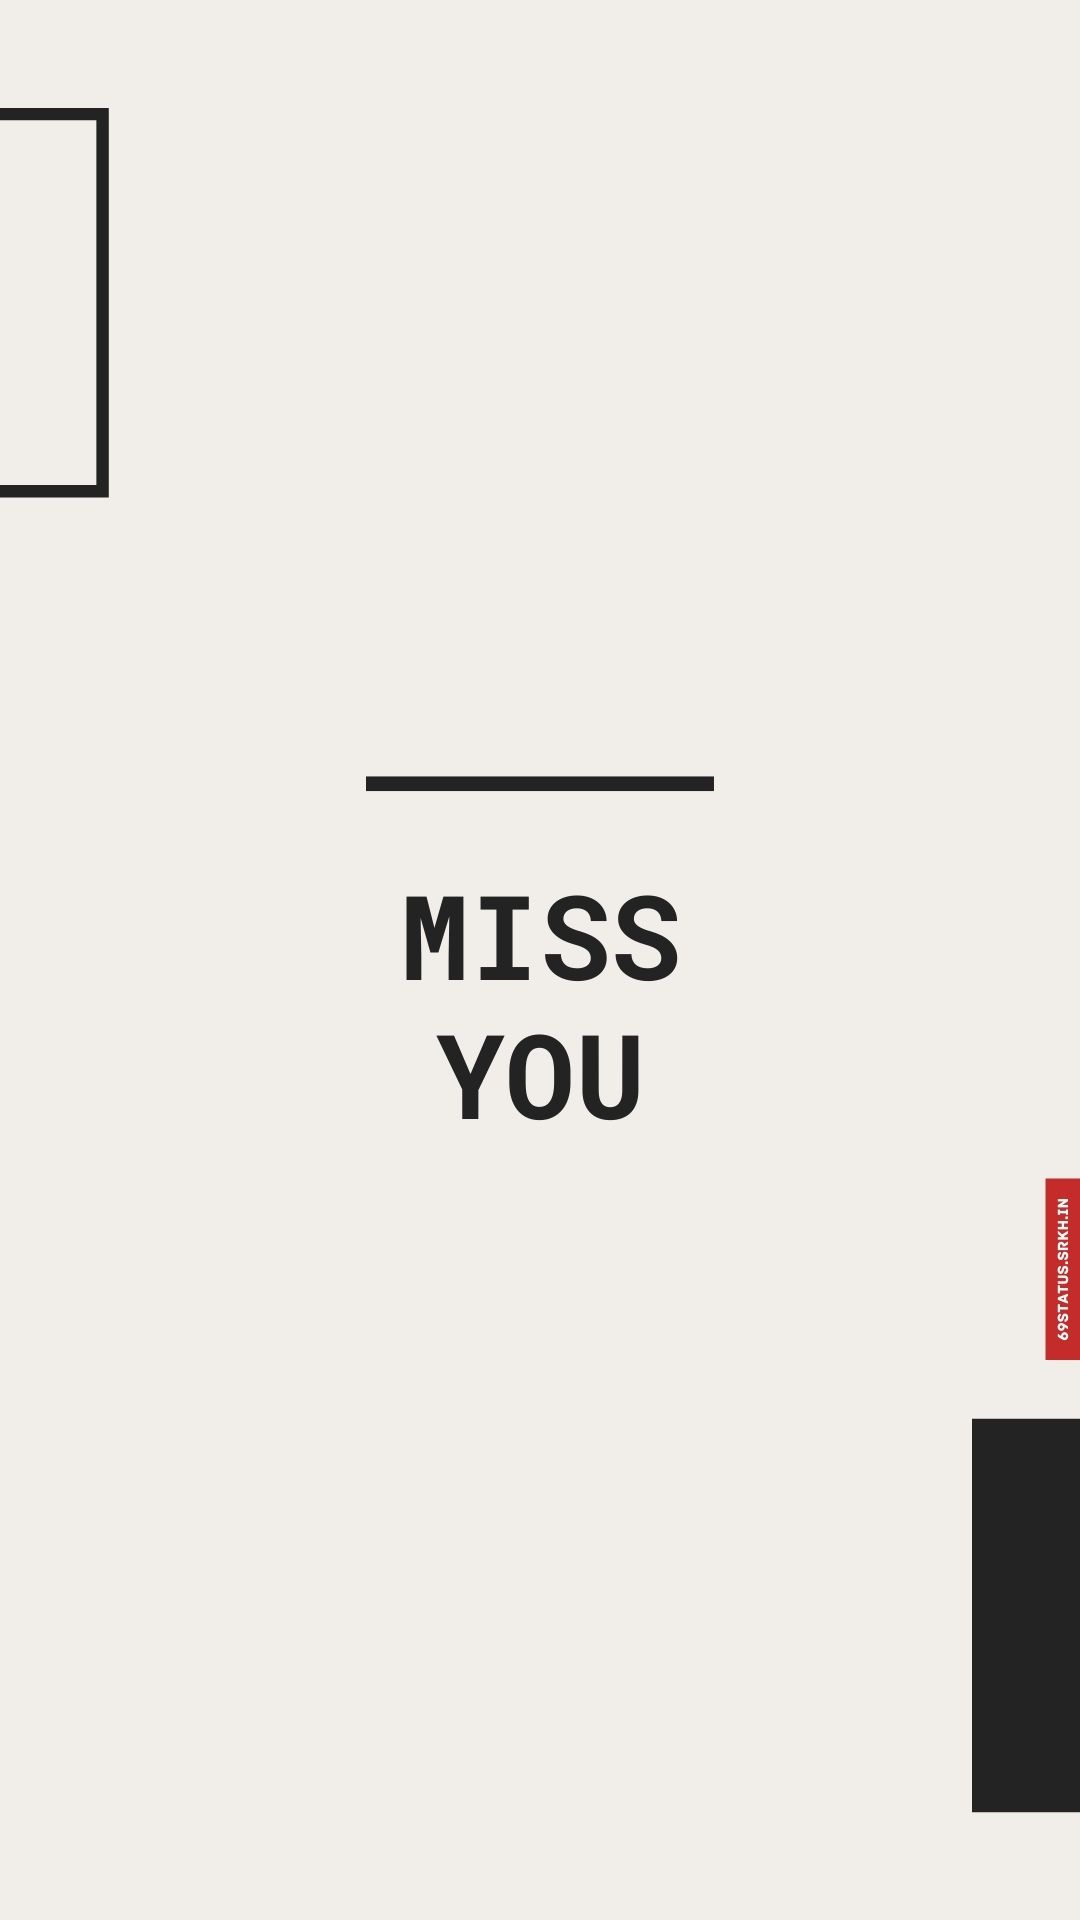 Miss you images wallpaper hd full HD free download.